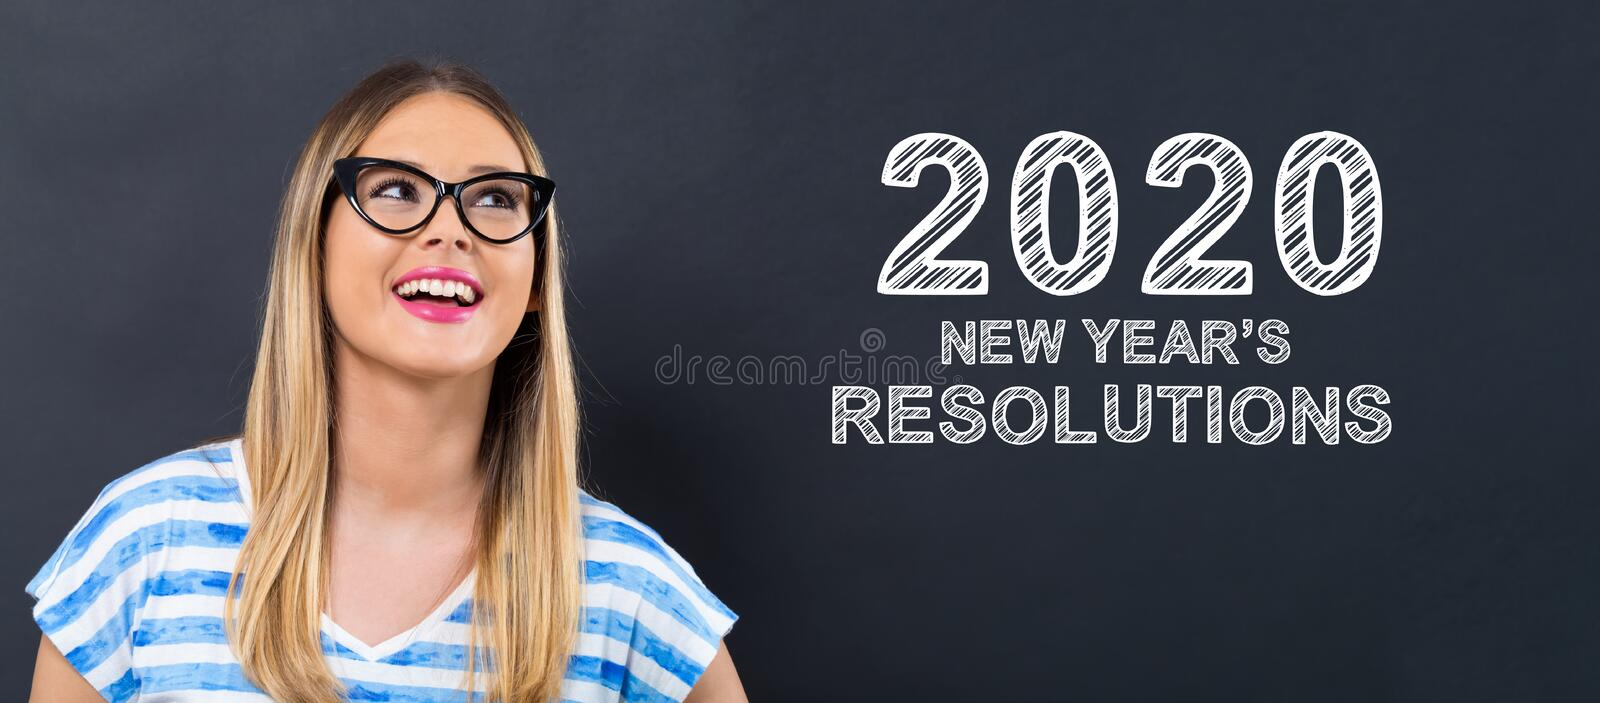 2020 New Years Resolutions with happy young woman stock image